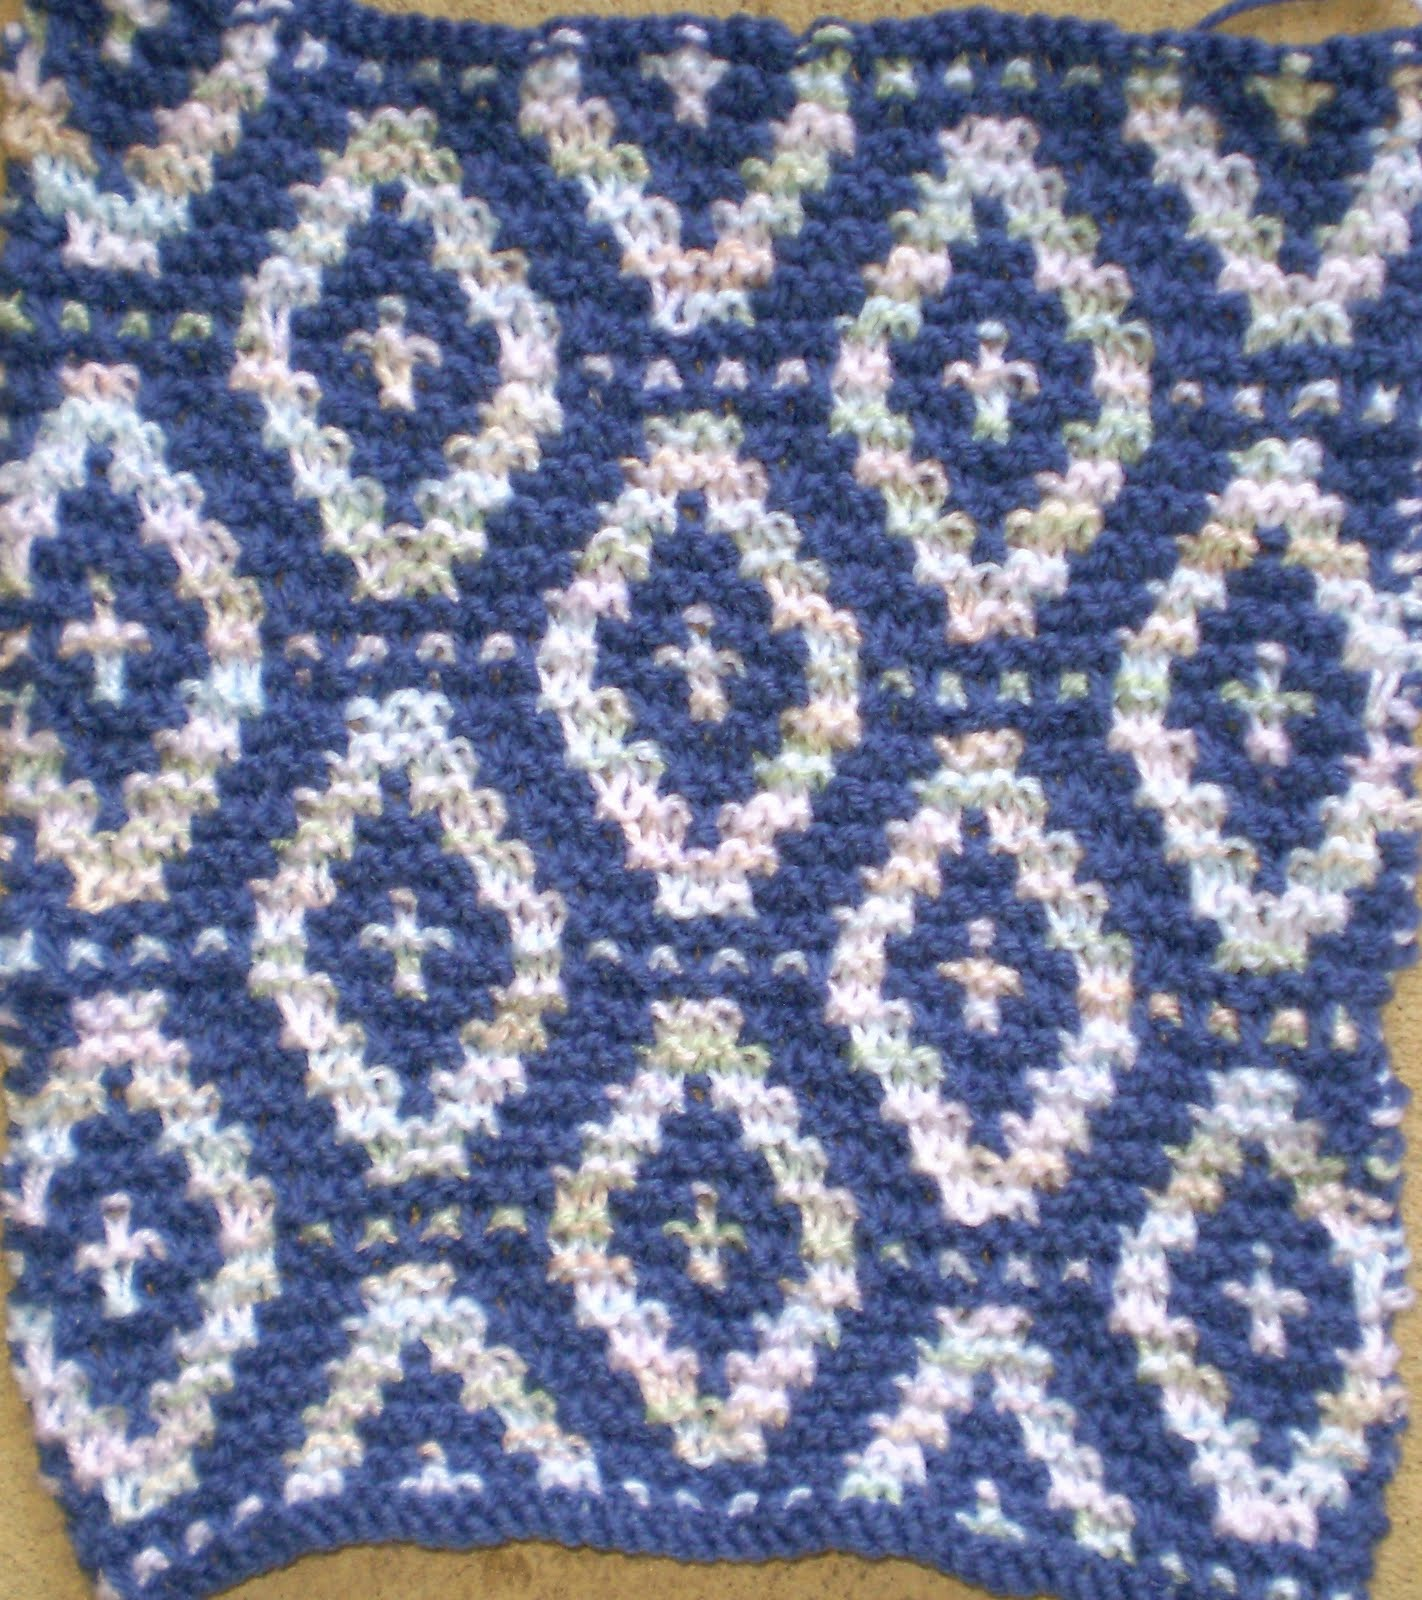 Slip Stitch Knitting Baby Blanket Pattern : never too hot to stitch!: knitting for charity